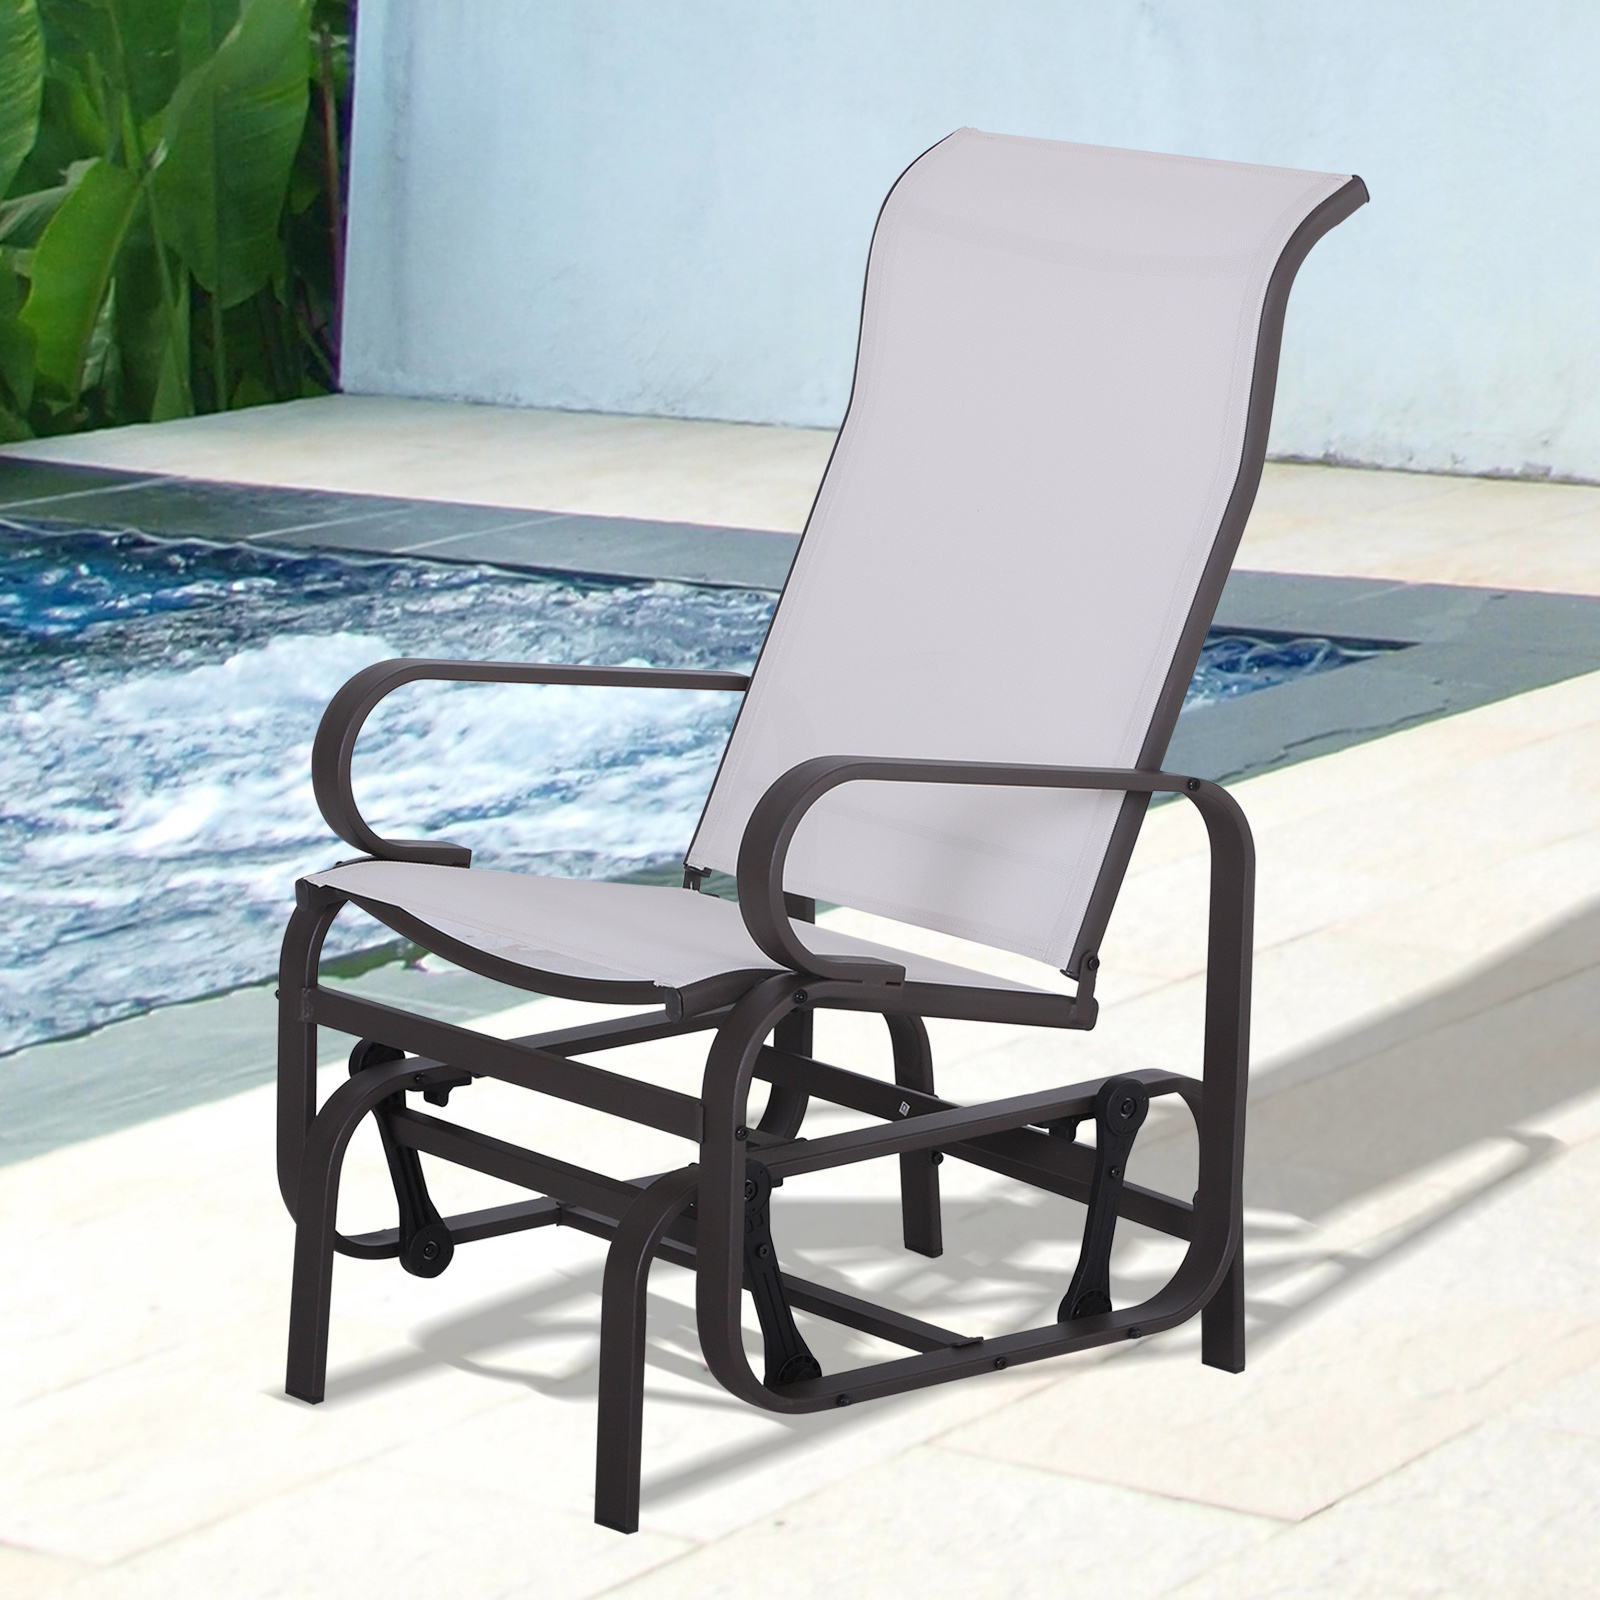 Newest Details About Outsunny Patio Sling Fabric Glider Swing Chair Seat Lounger Porch Rocker Outdoor With Regard To Mesh Fabric With Steel Frame Chairs With Canopy And Tray (View 22 of 25)